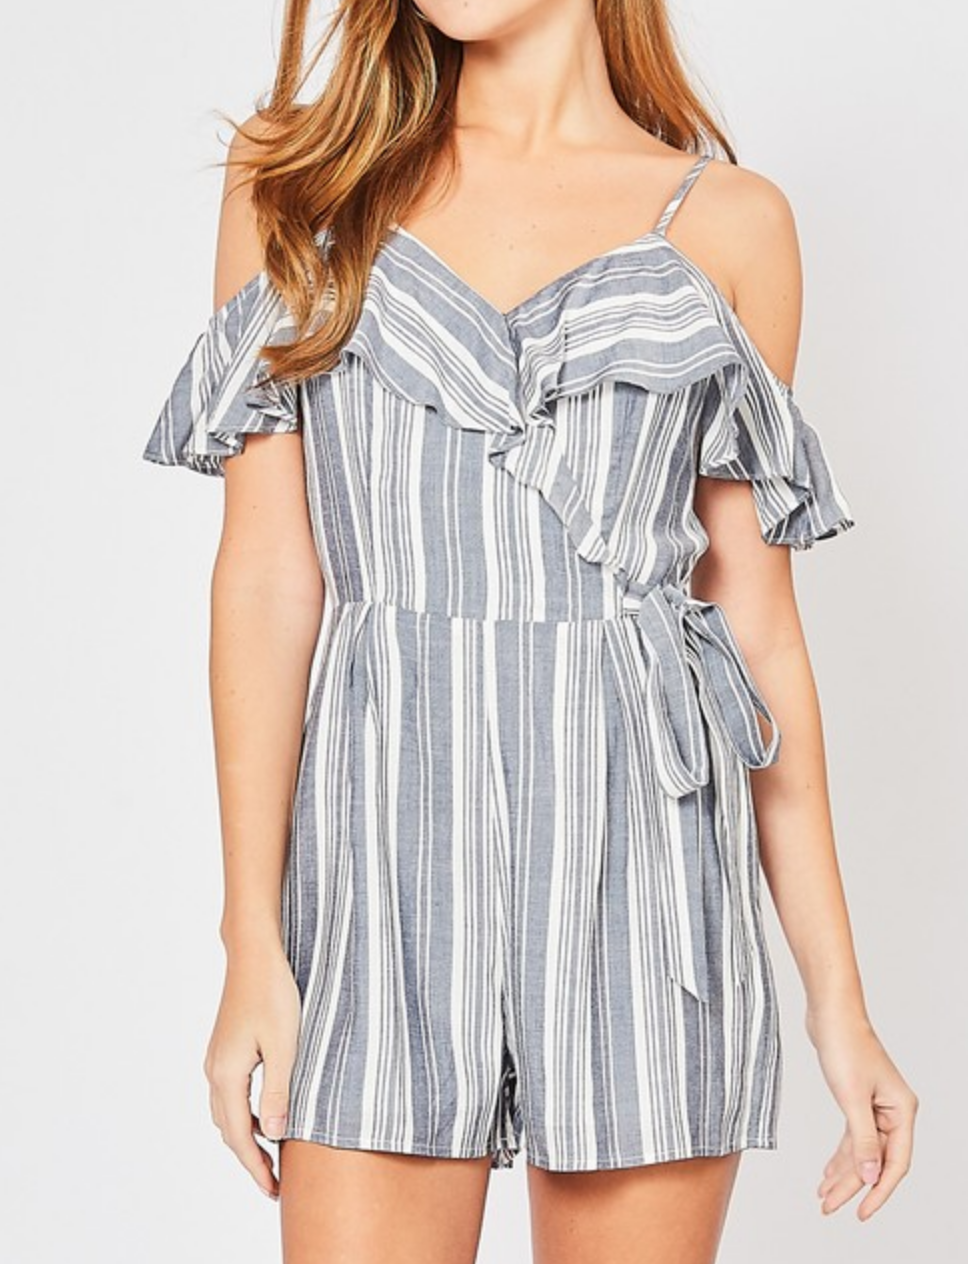 Entro Shades of Grey Romper